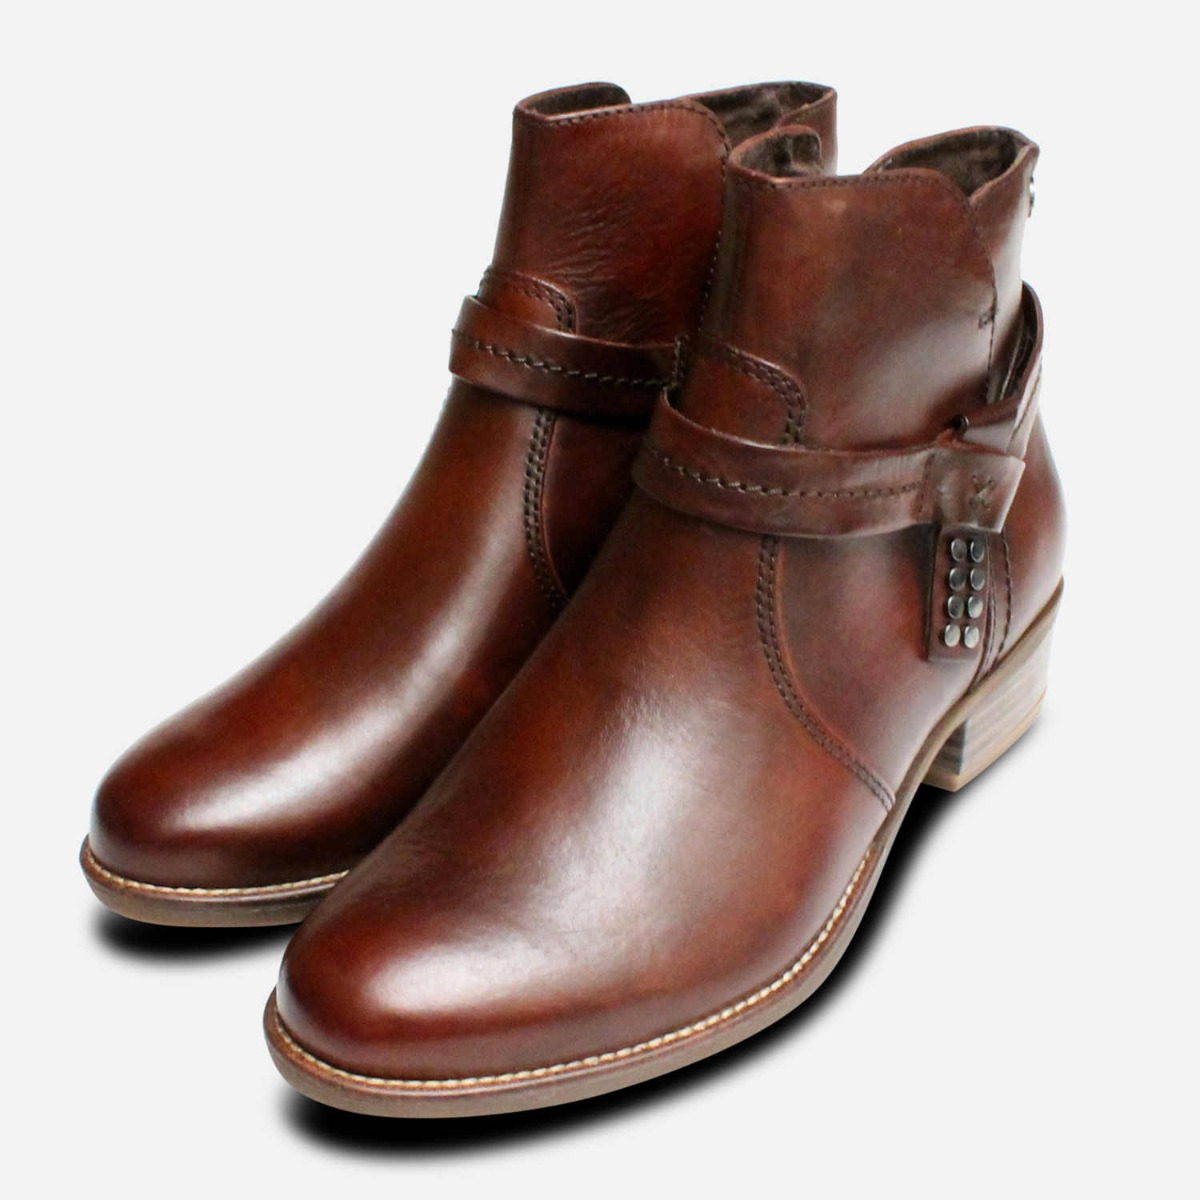 Brown Leather Ankle Boots by Tamaris